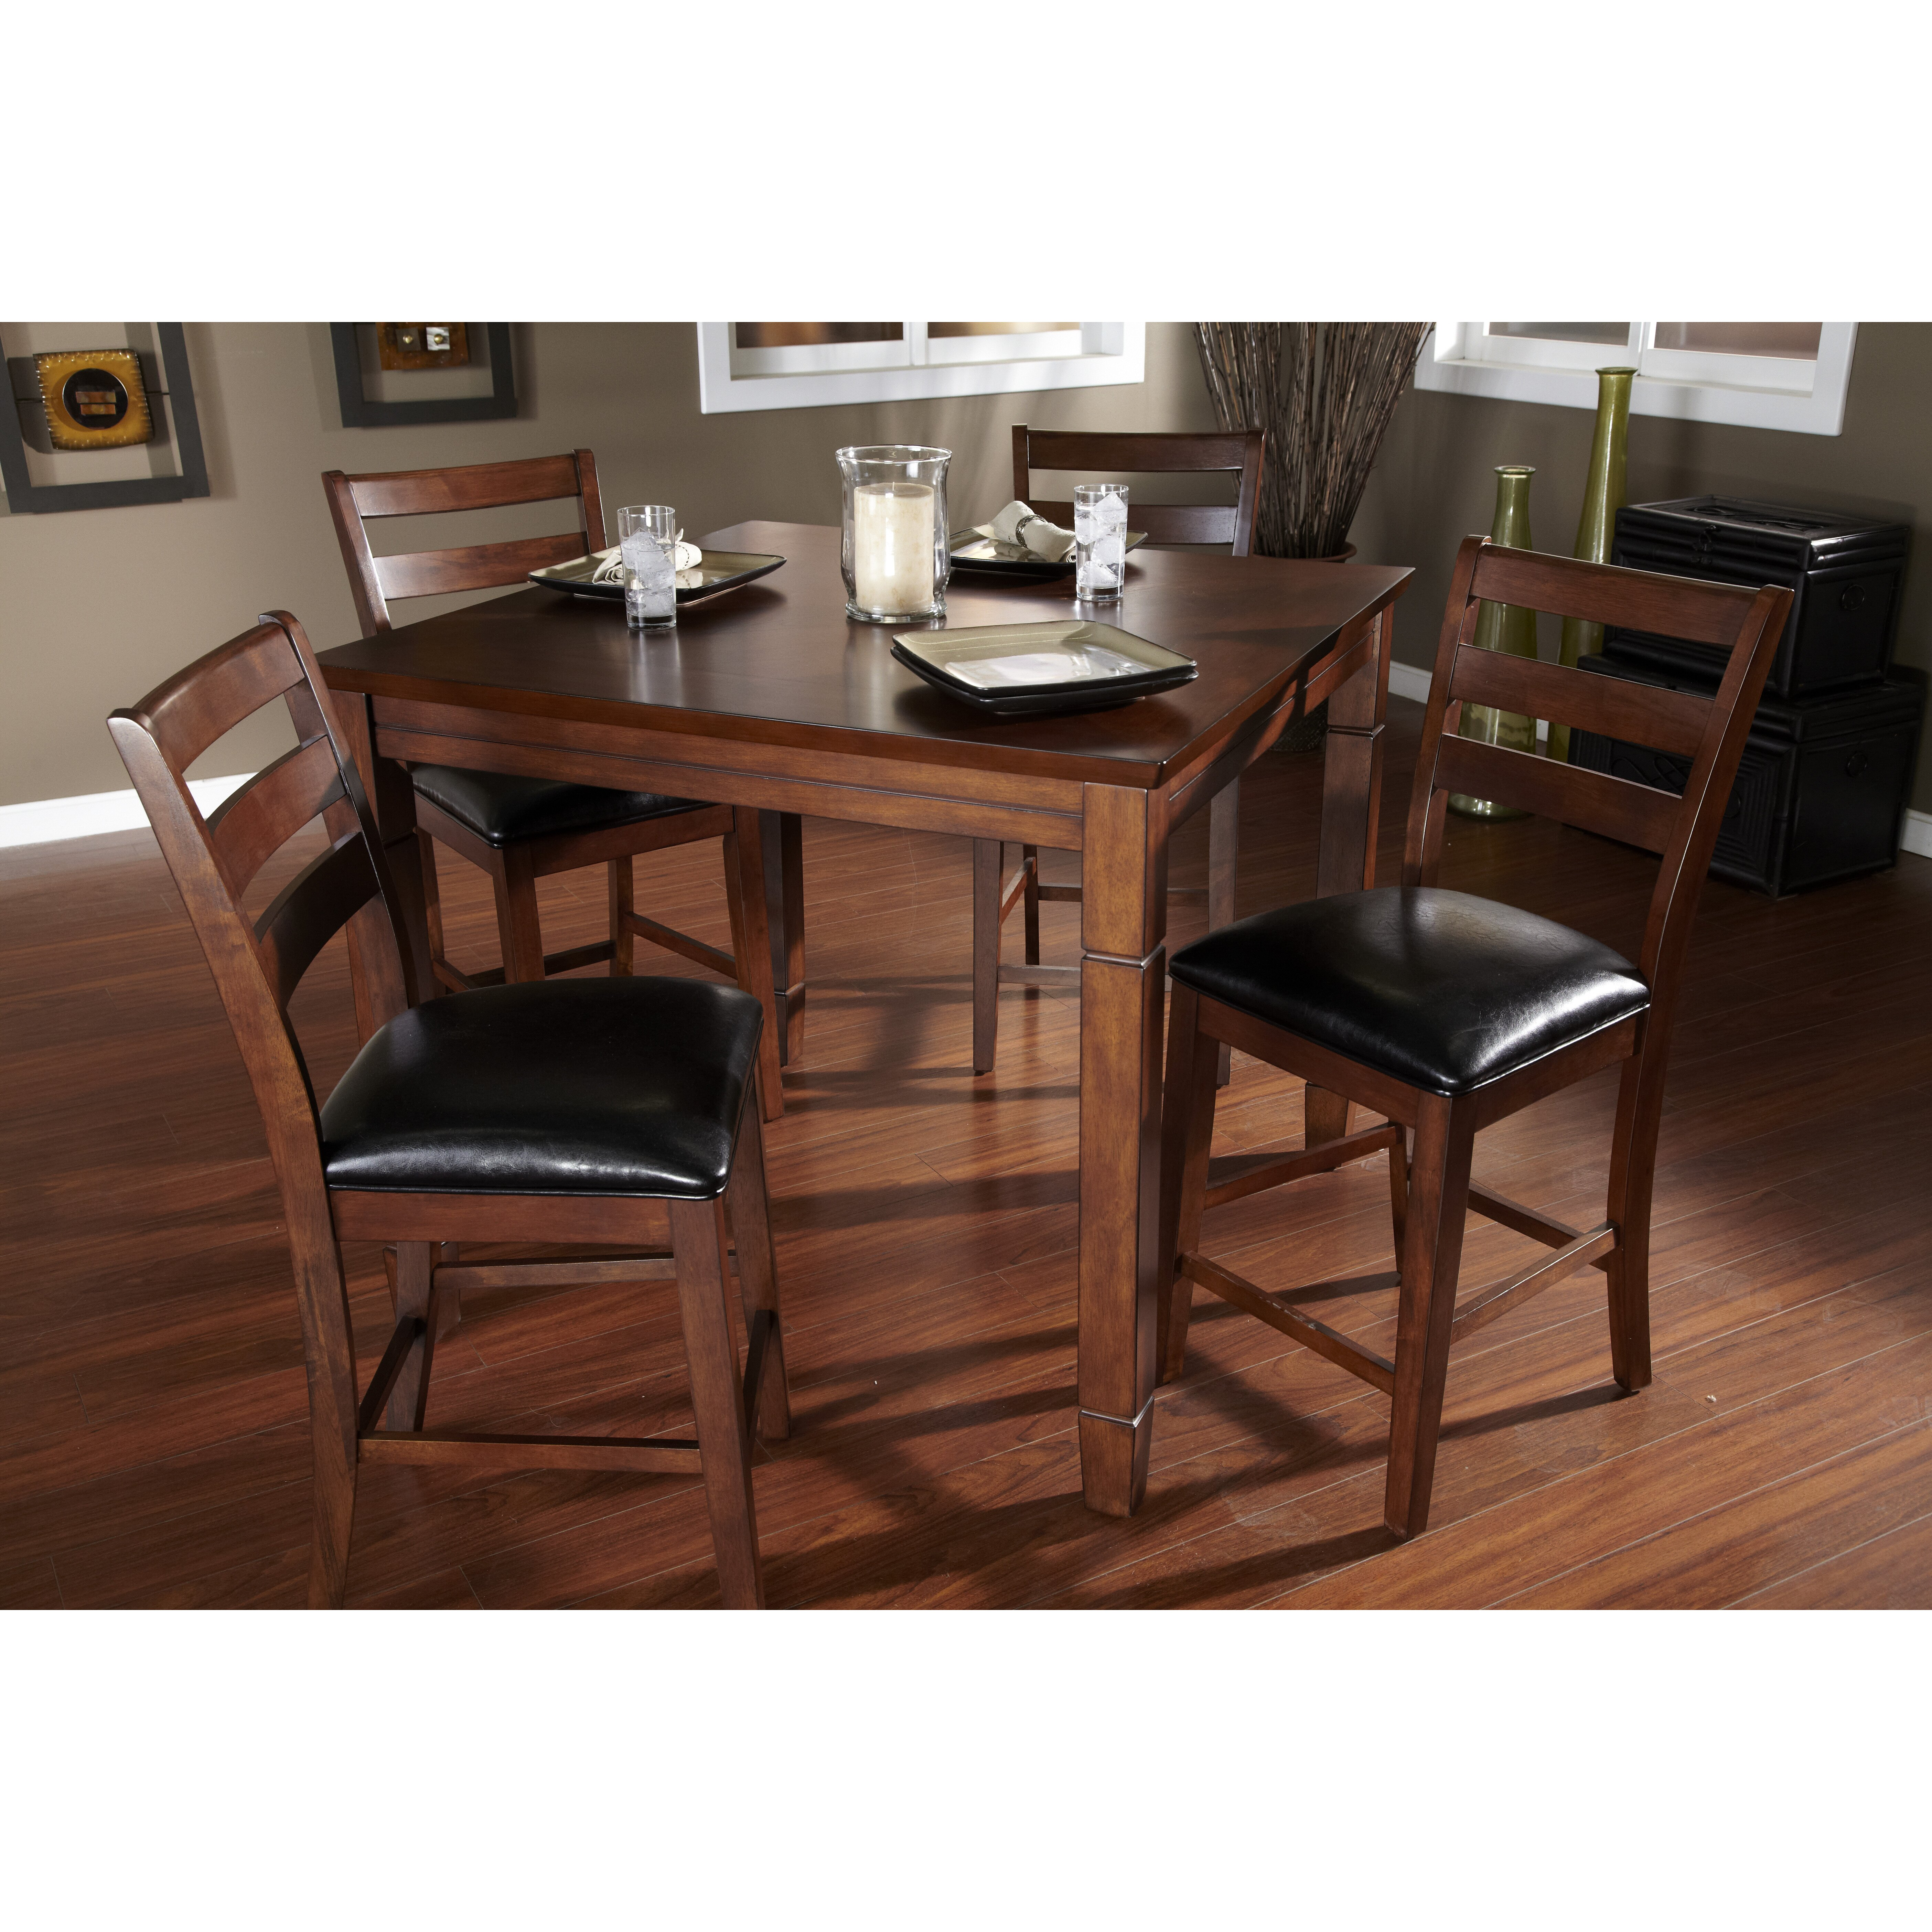 american heritage rosa 5 piece counter height dining set - Counter Height Chairs